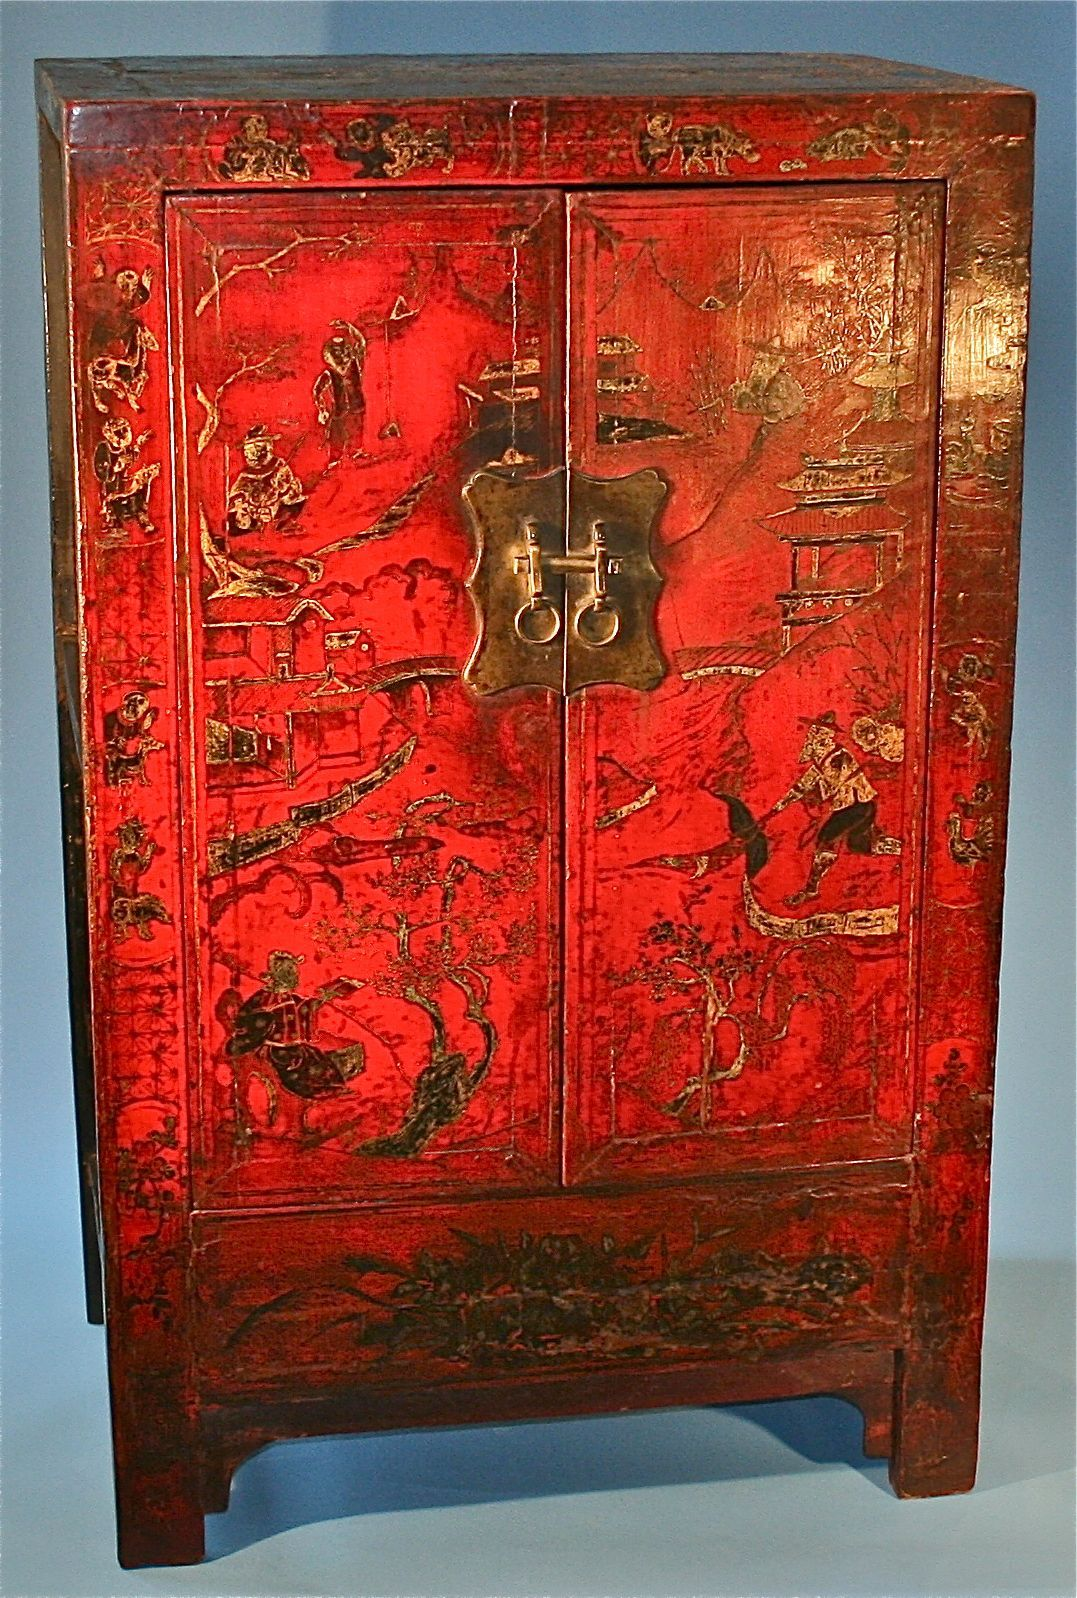 Antique Chinese Red Hand Painted Lacquer Wood Cabinet Dresser Antique Chinese Furniture Antiques Wood Cabinets